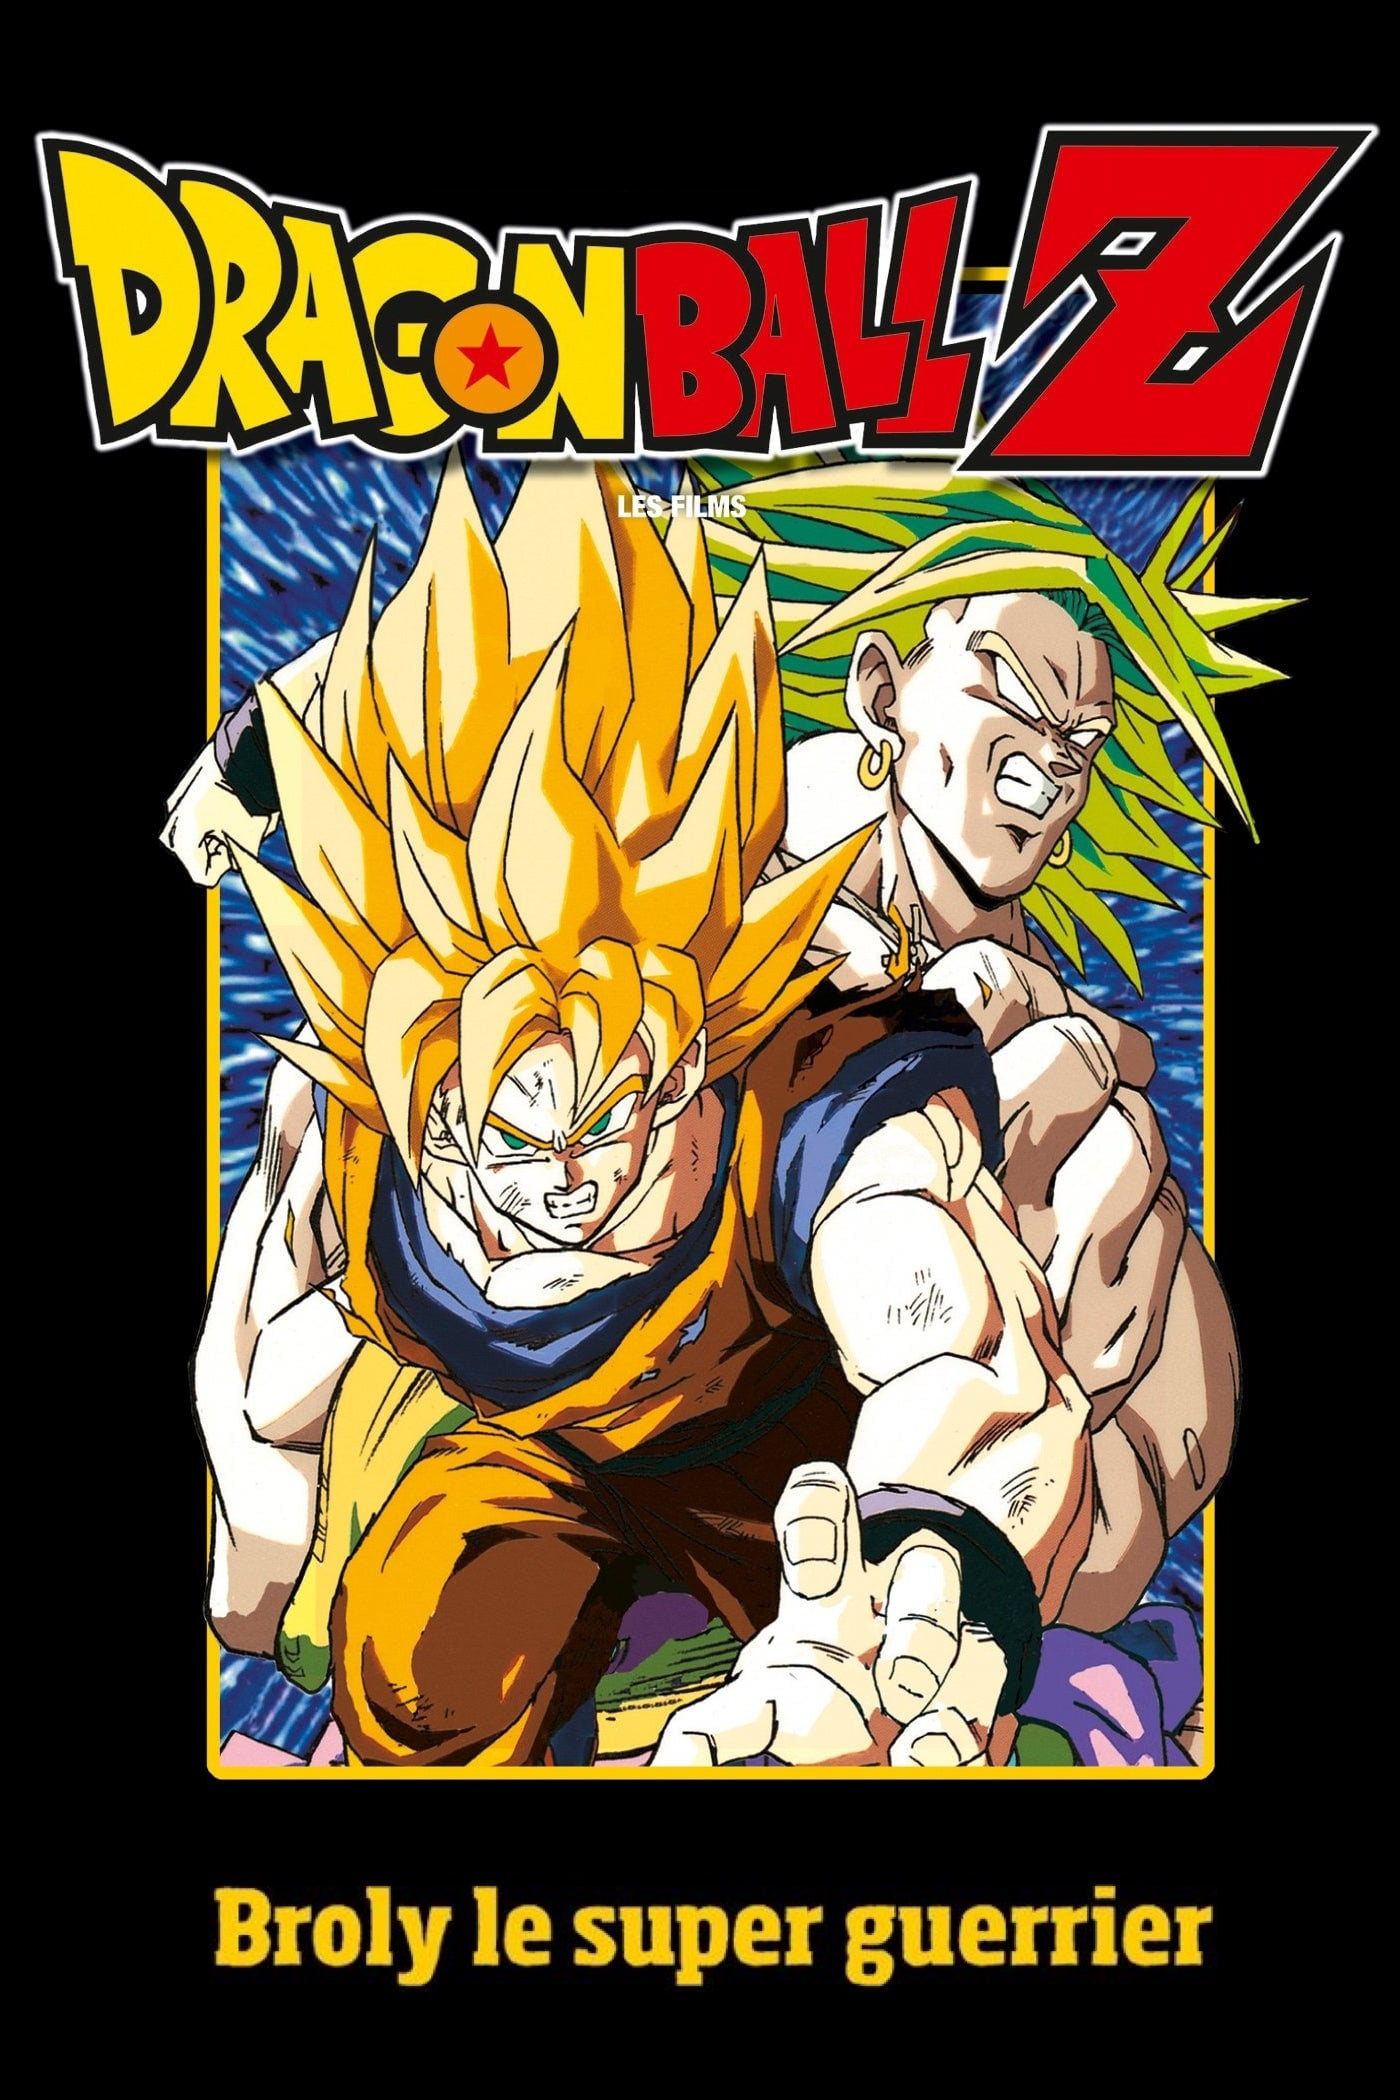 Dragon Ball Super : Broly Le Super Guerrier Stream : dragon, super, broly, guerrier, stream, Dragon, Broly,, Super, Guerrier, Regarder, Films